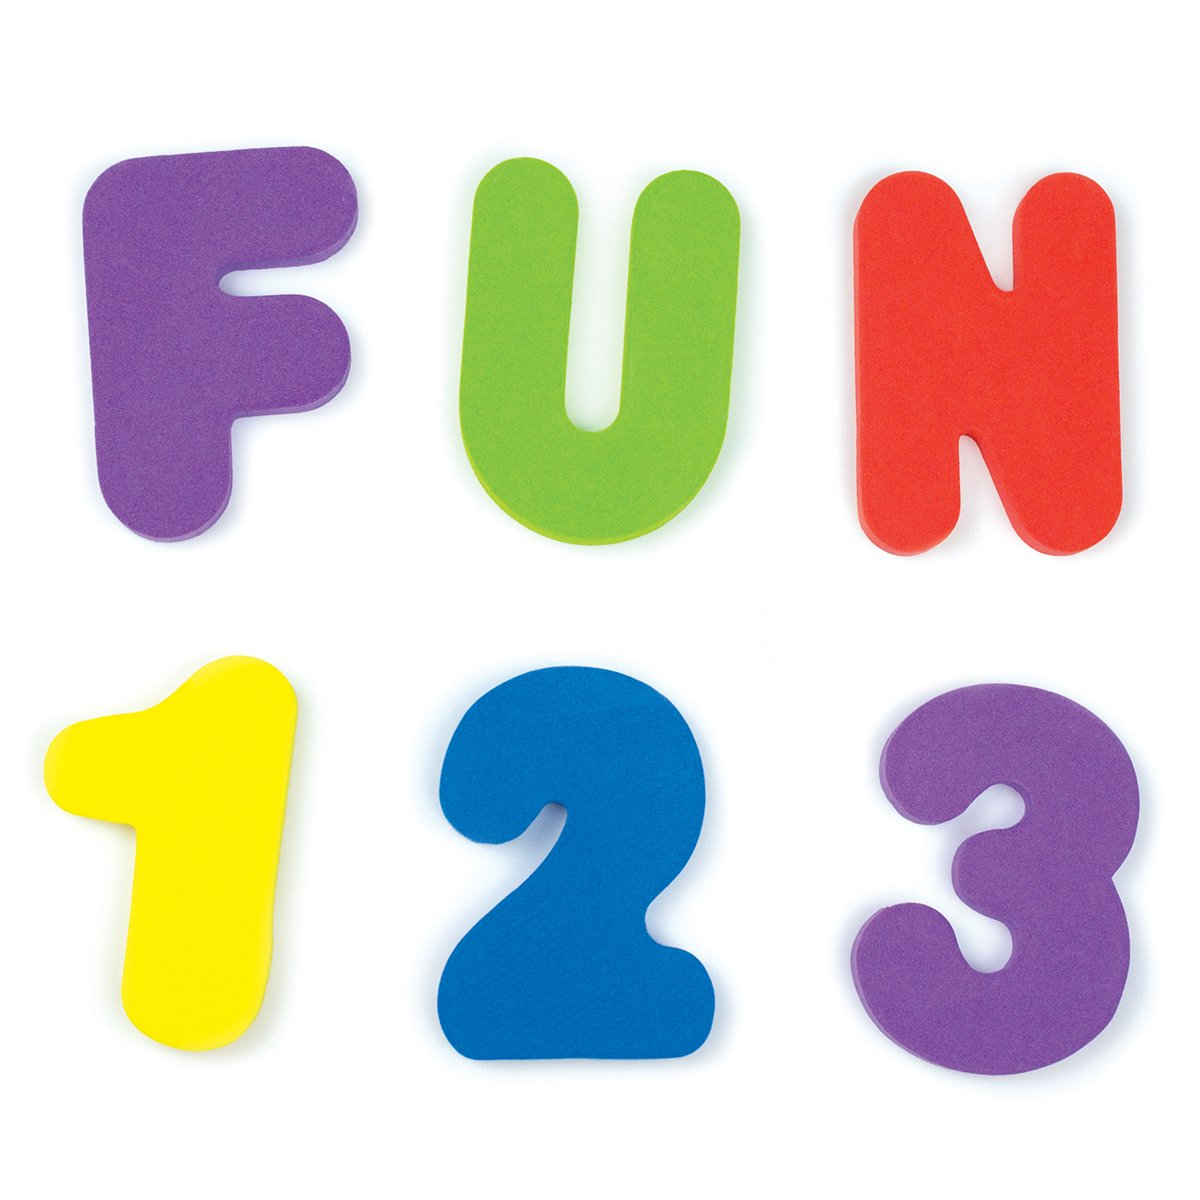 Munchkin Learn Bath Toy, 36 Bath Foam Letters and Numbers (Letters A-Z; Numbers 0-9) 01110802